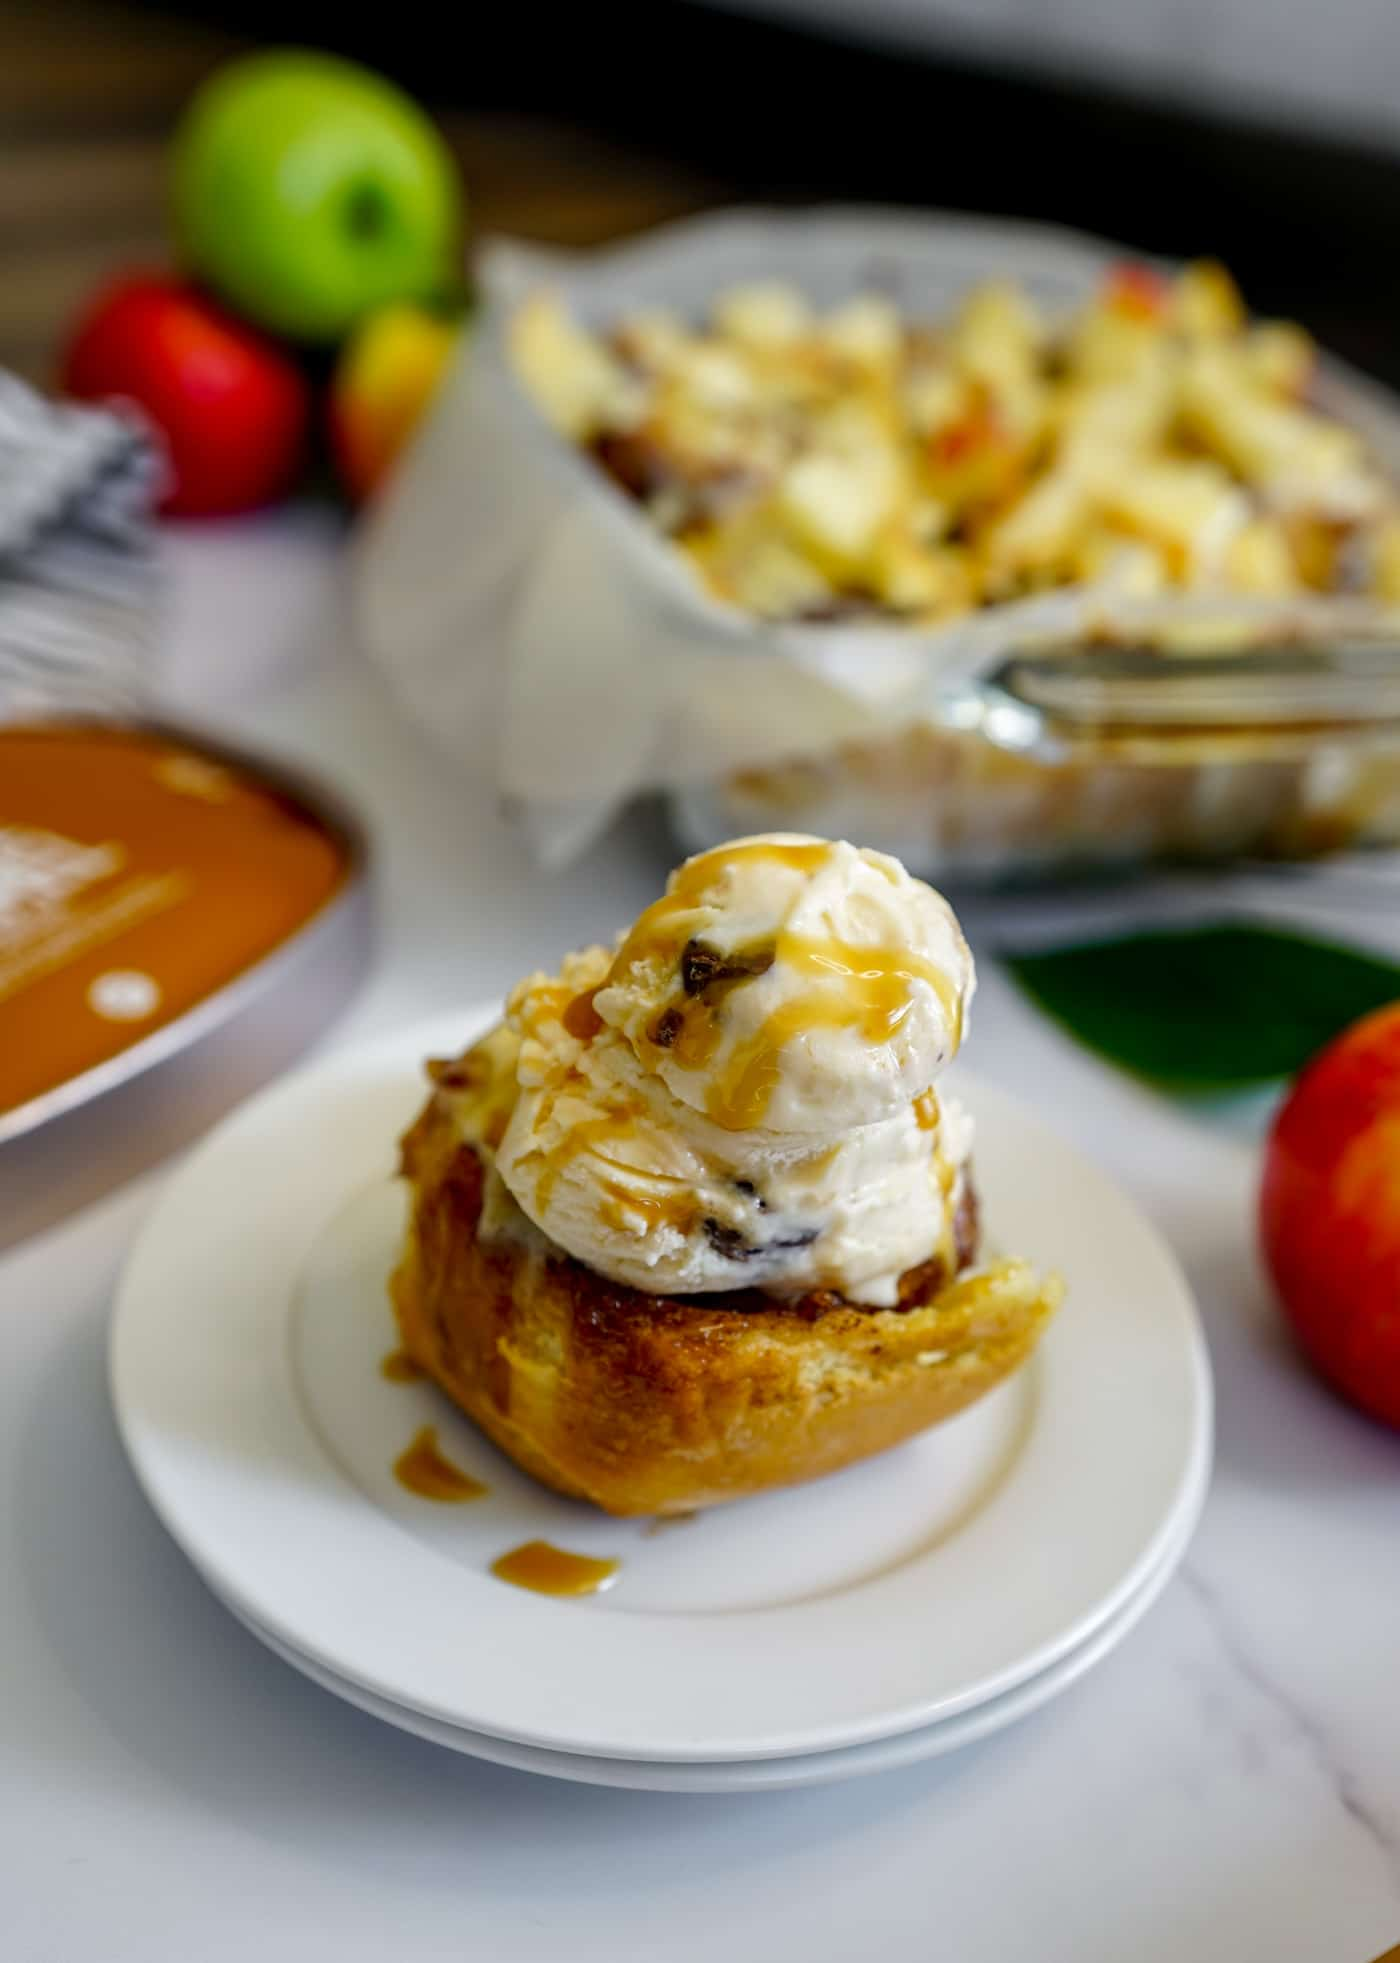 One warm caramel apple cinnamon roll topped with a scoop of Hudsonville Seaside Caramel ice cream.